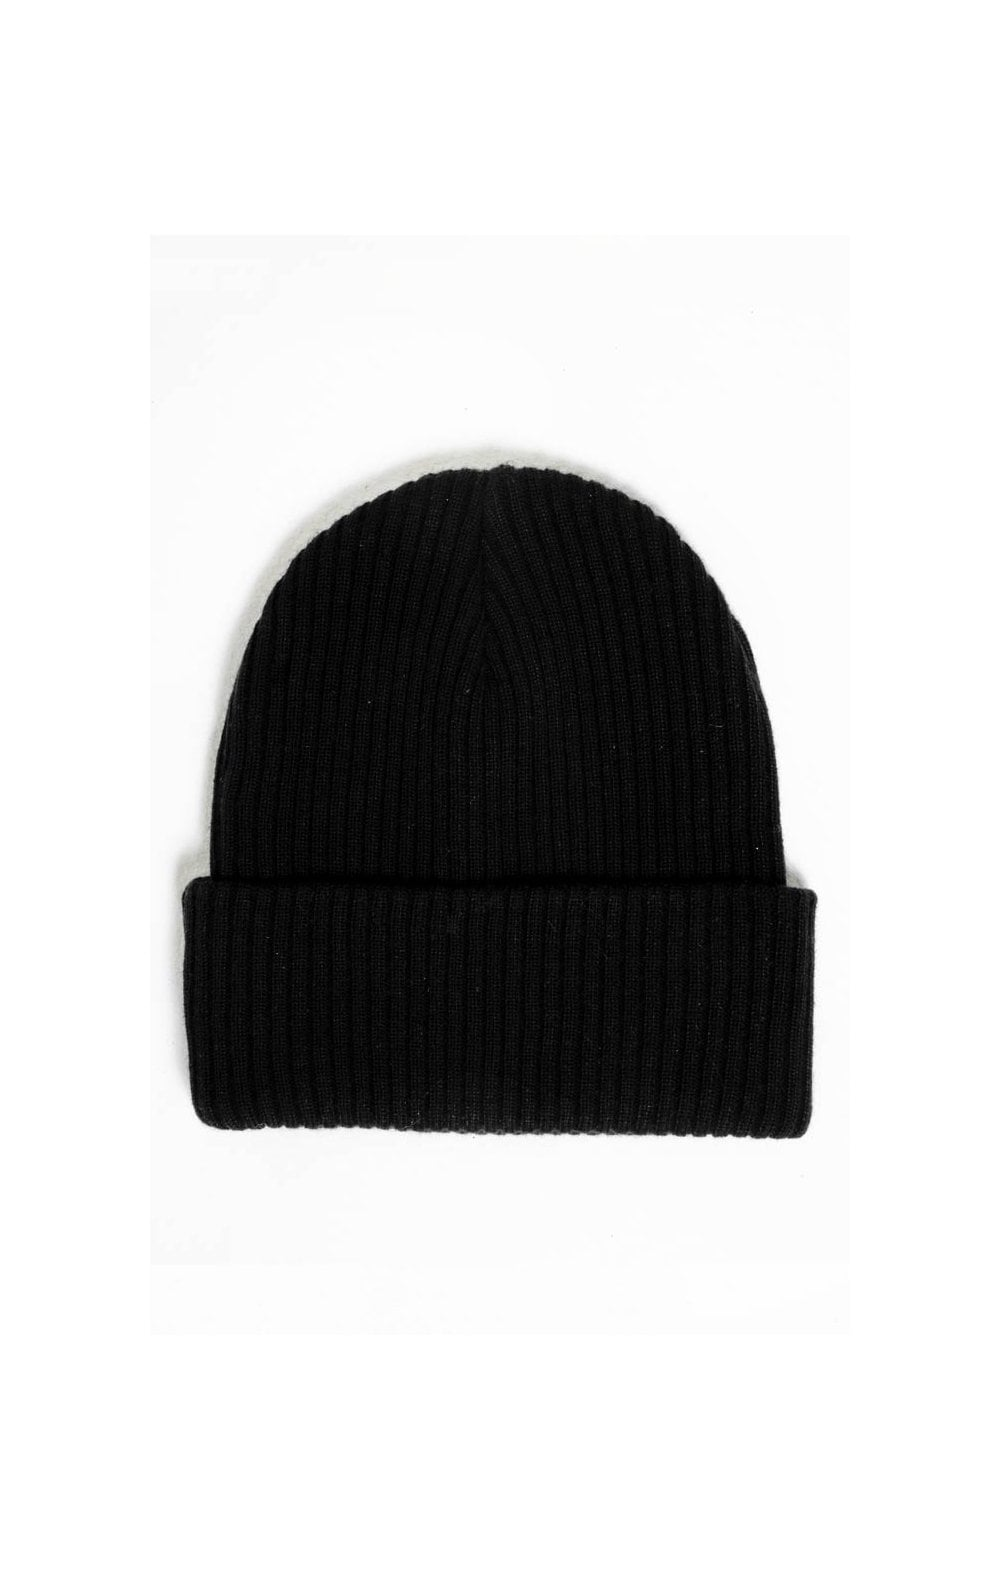 Load image into Gallery viewer, SikSilk x Dani Alves Beanie - Black (1)